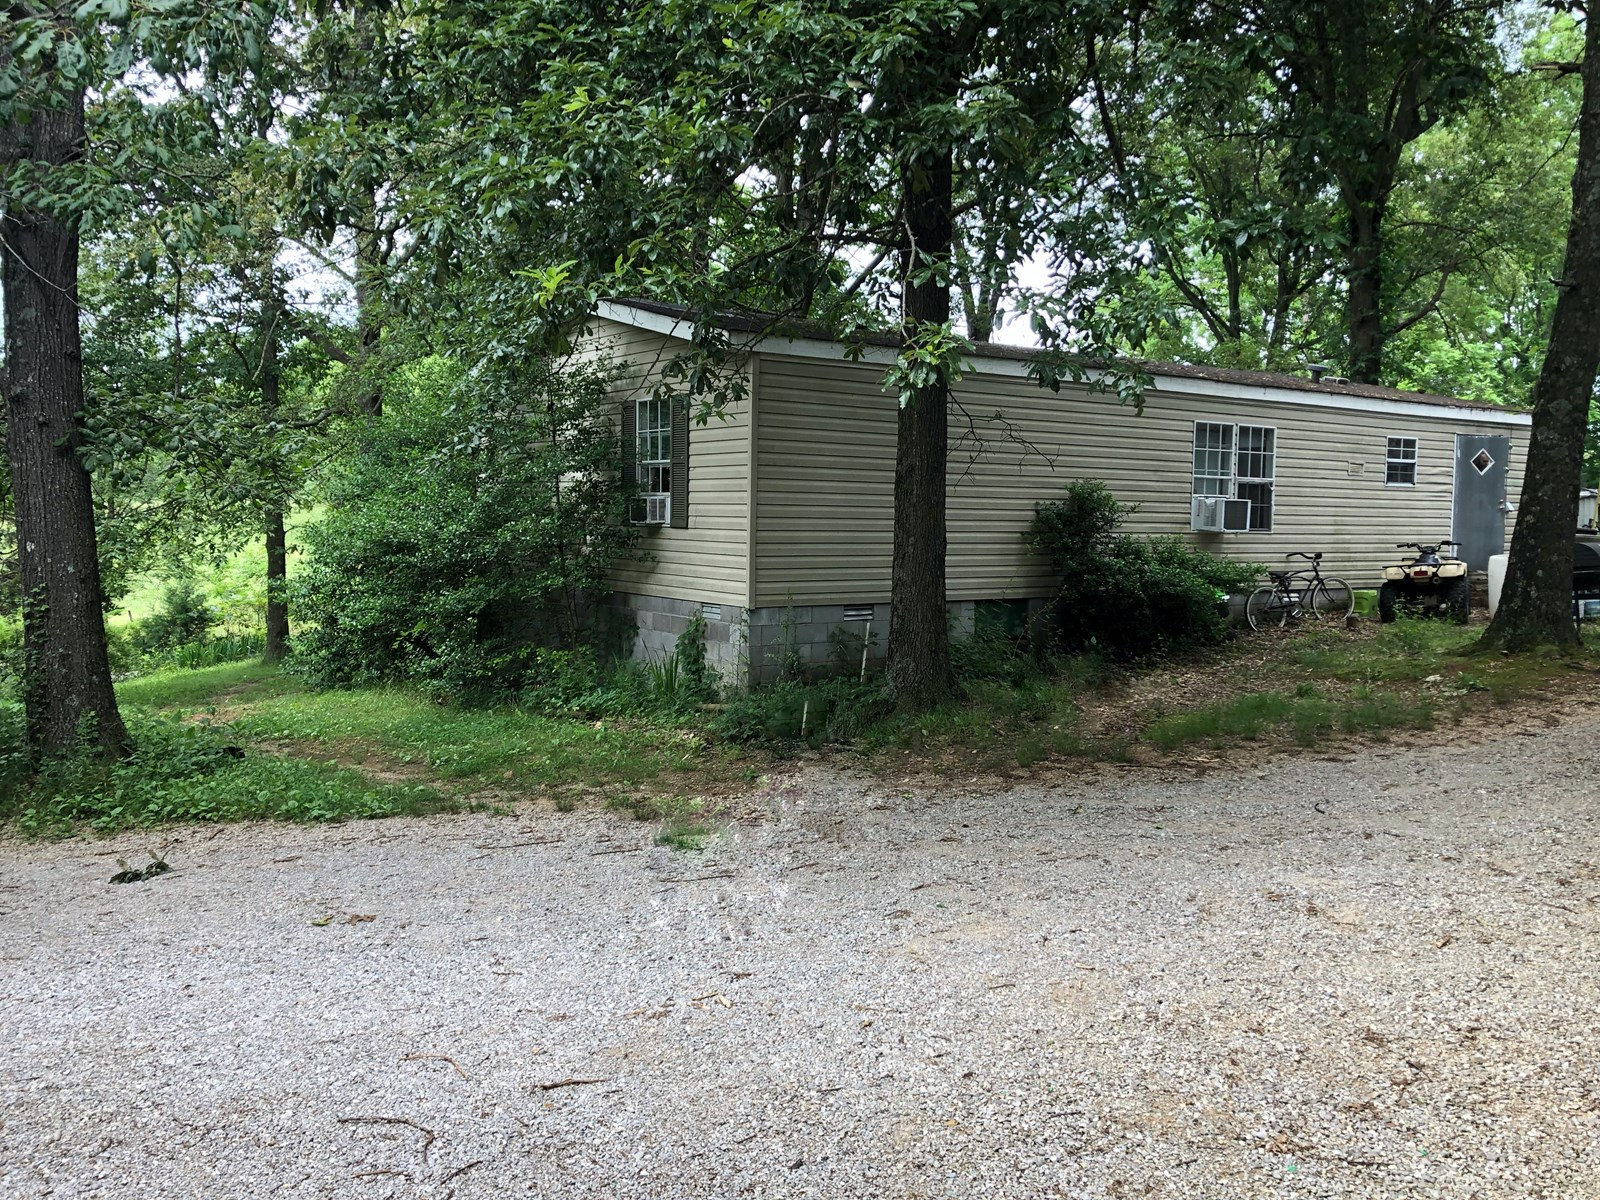 3 Bedroom, 2 bath Mobile home in Park City KY